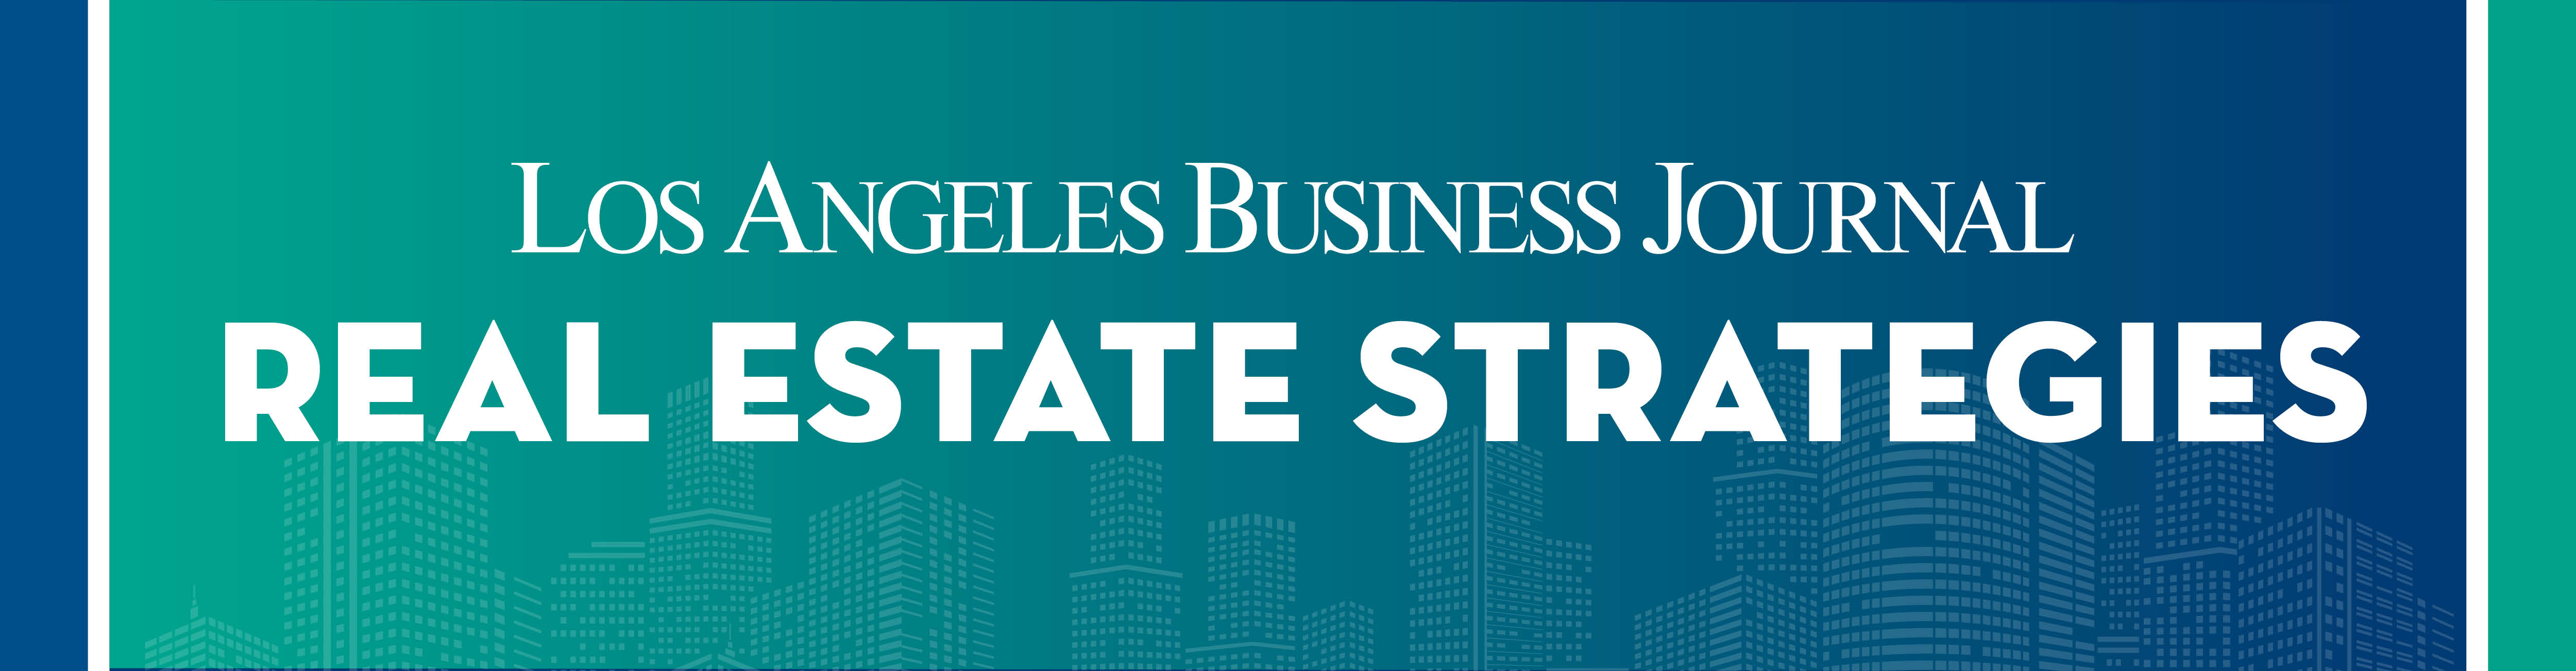 Los Angeles Business Journal Real Estate Advisory Virtual Event Banner